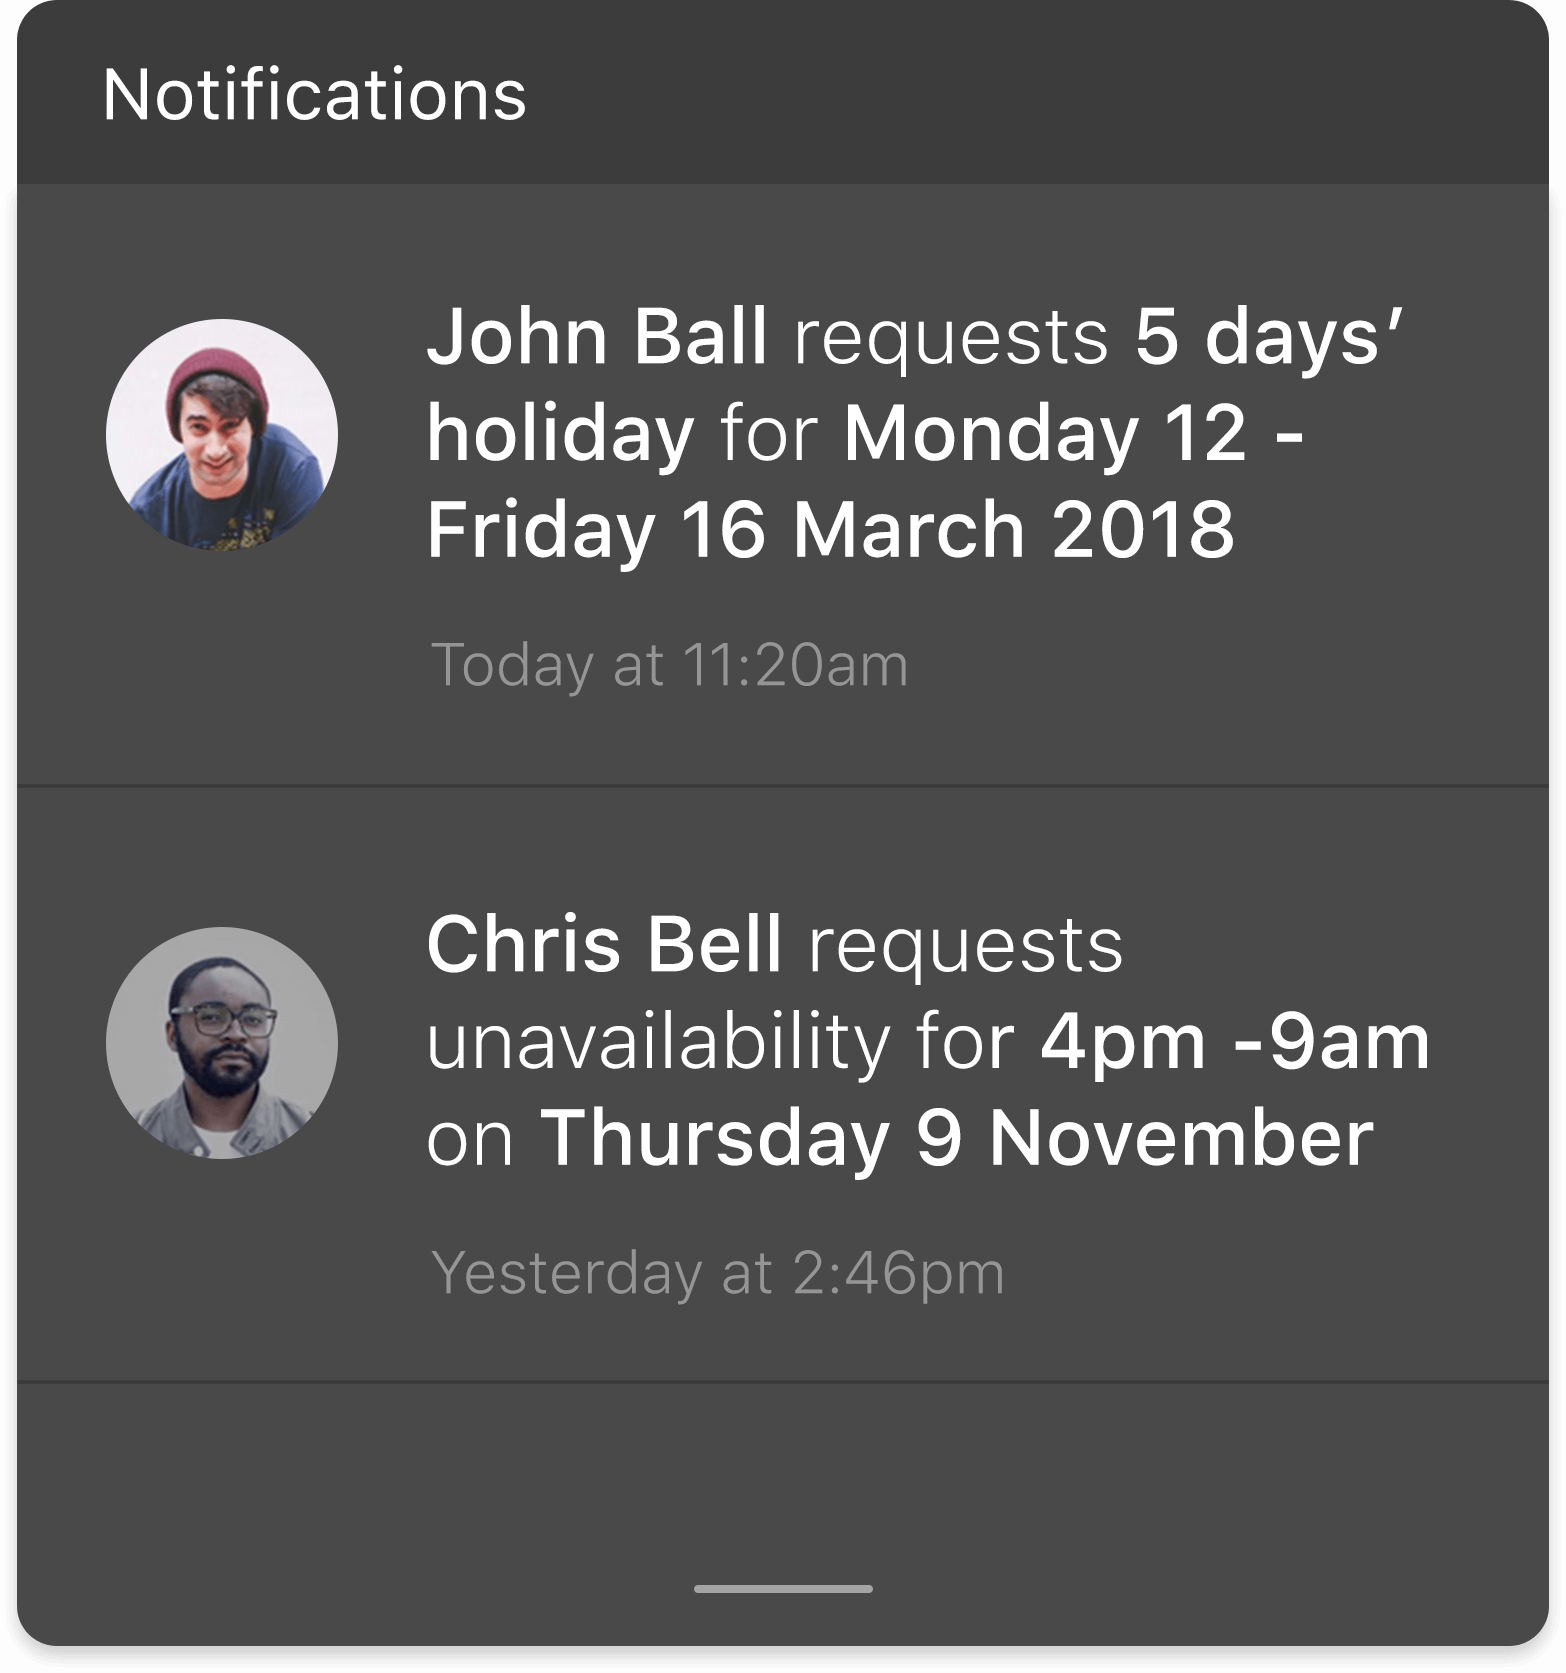 Leave request notifications on rota planning app